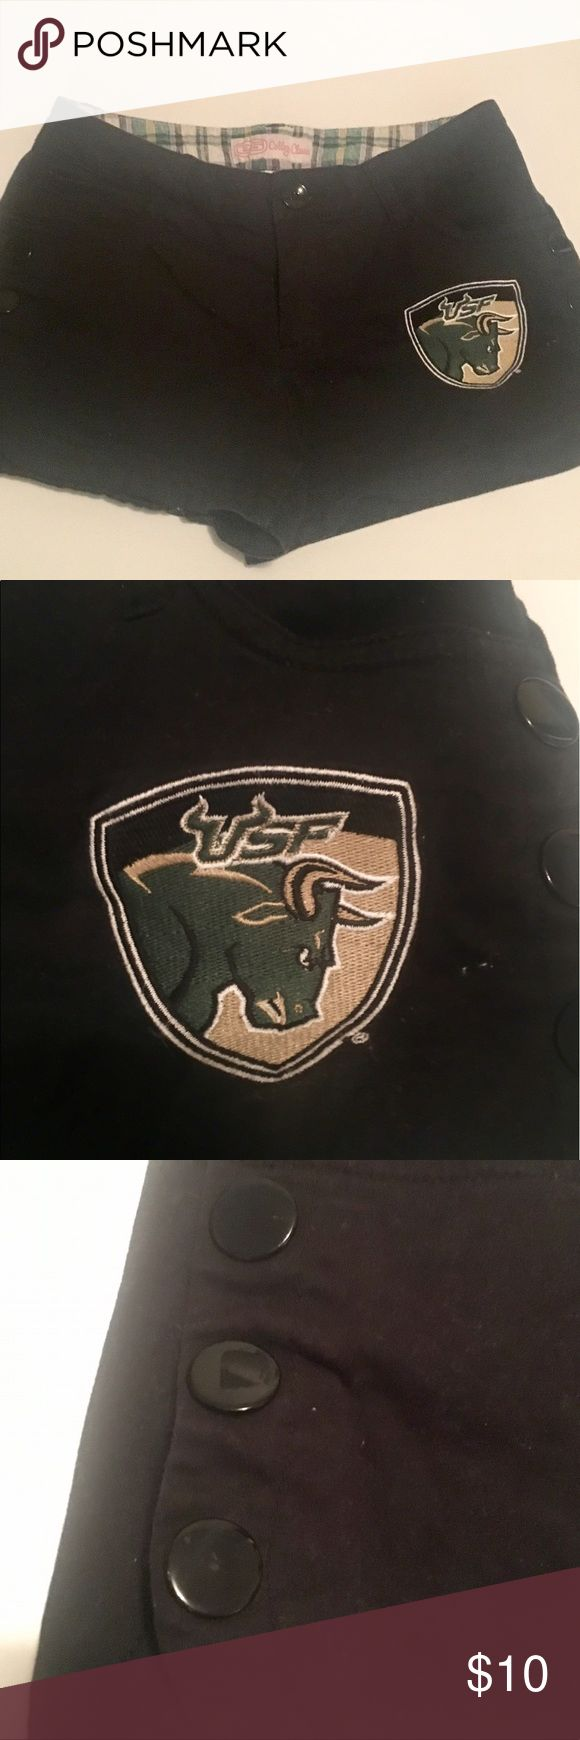 Black University of South Florida Bulls shorts!!! University of South Florida (USF) Bulls black shorts! Juniors size 5 and have the USF logo on the front left and the word BULLS on the back pocket!!! The shorts also have 3 cute snaps on the sides!! Bought at the USF bookstore! Shorts